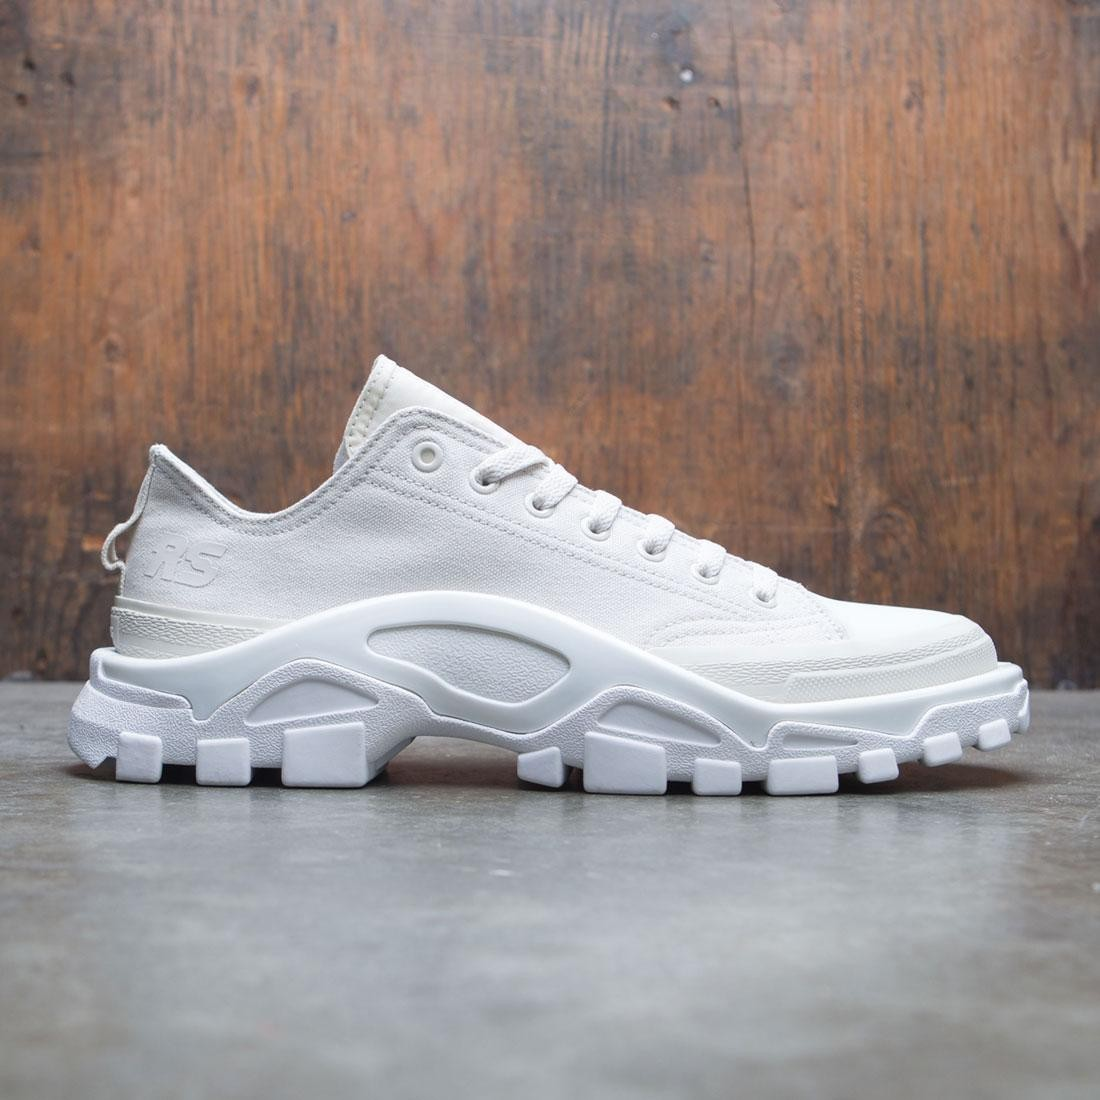 premium selection 98312 96f8b Adidas x Raf Simons Men Detroit Runner white talc footwear w